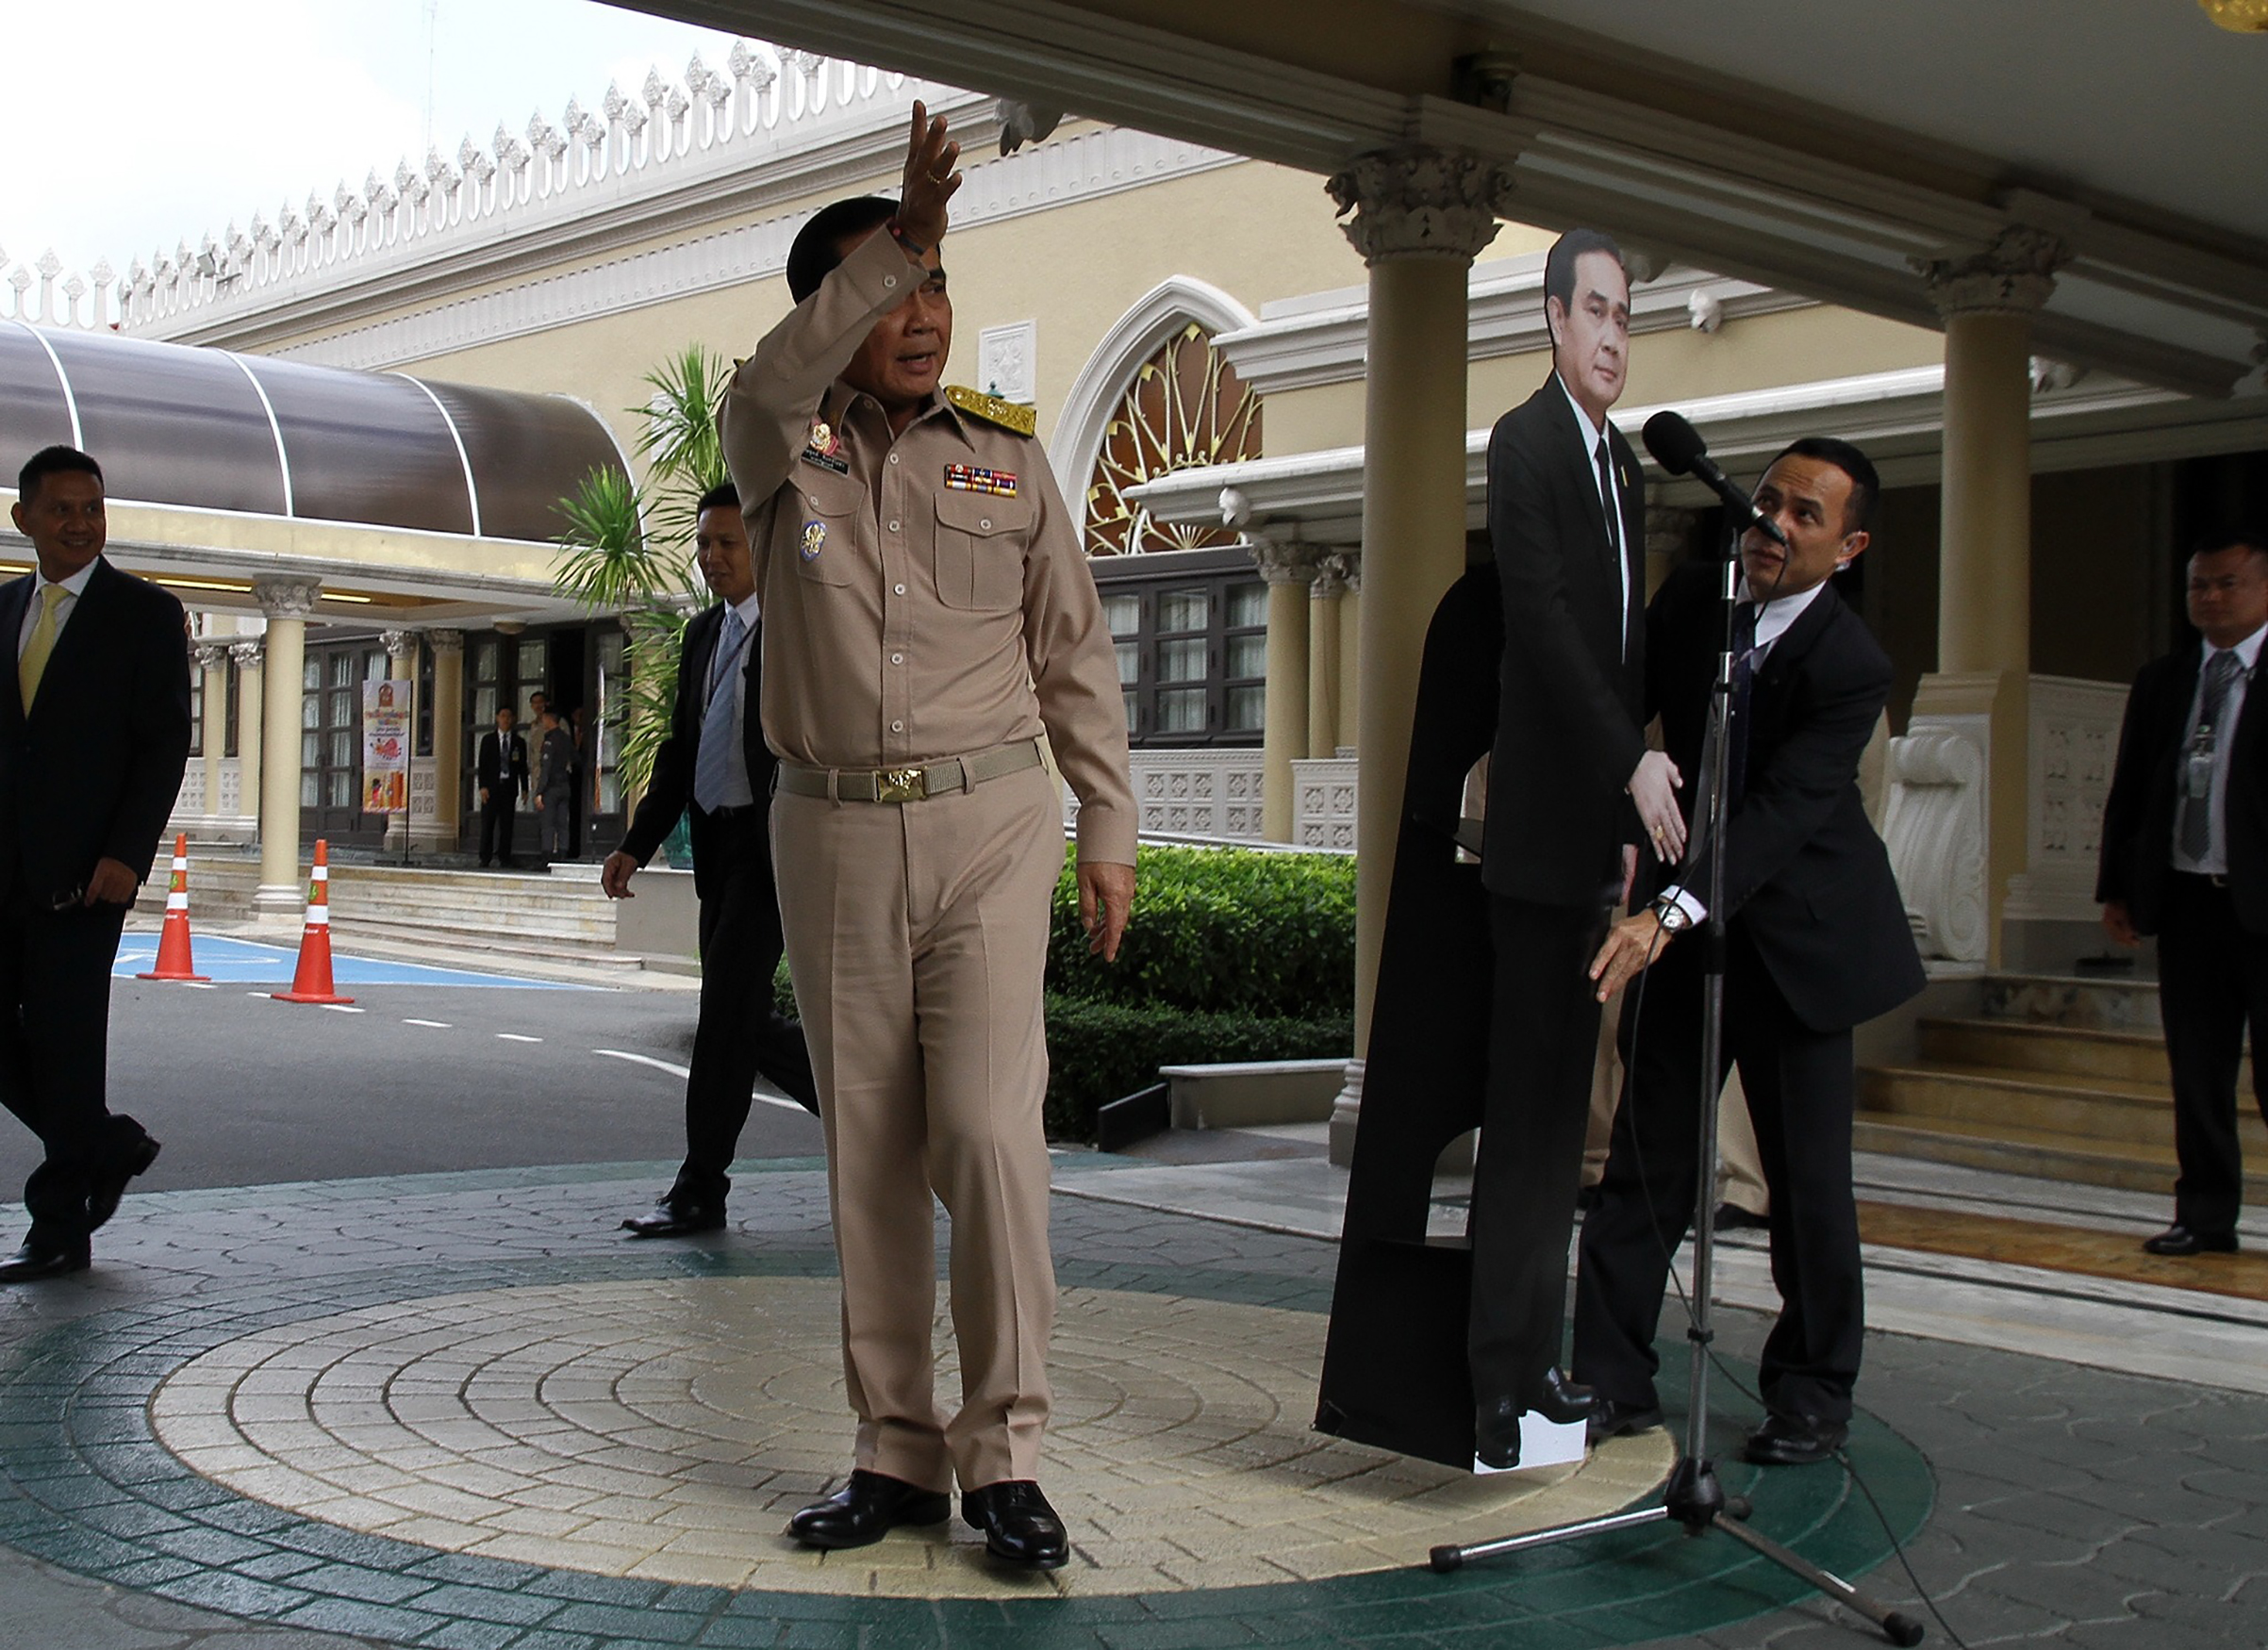 The Thai leader leaves a Jan. 8 press conference, telling reporters to direct questions to a cardboard cutout